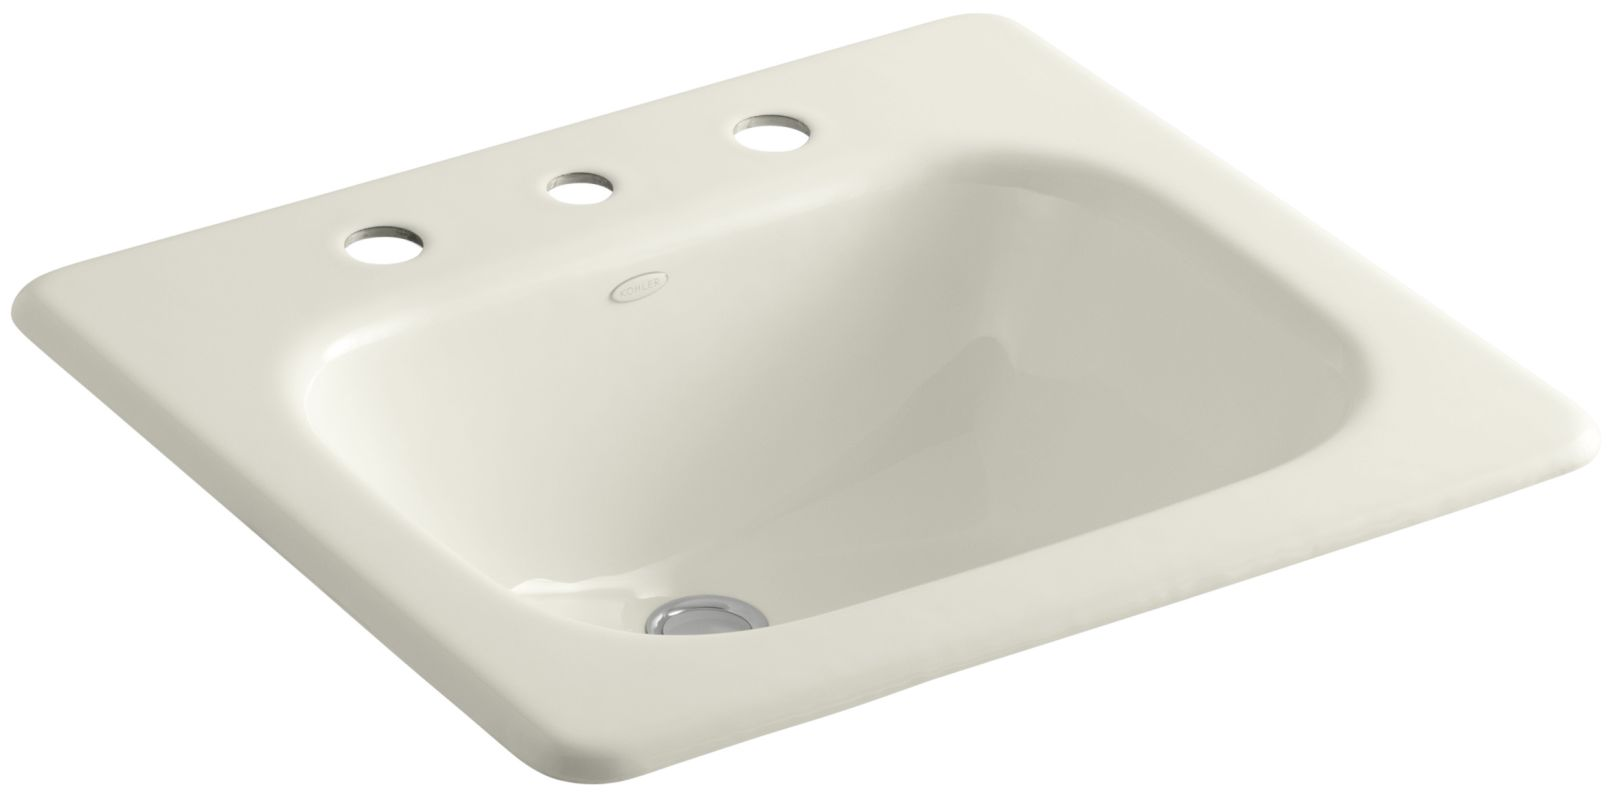 Kohler K 2895 8 96 Biscuit Tahoe 16 Cast Iron Drop In Bathroom Sink With 3 Holes Drilled And